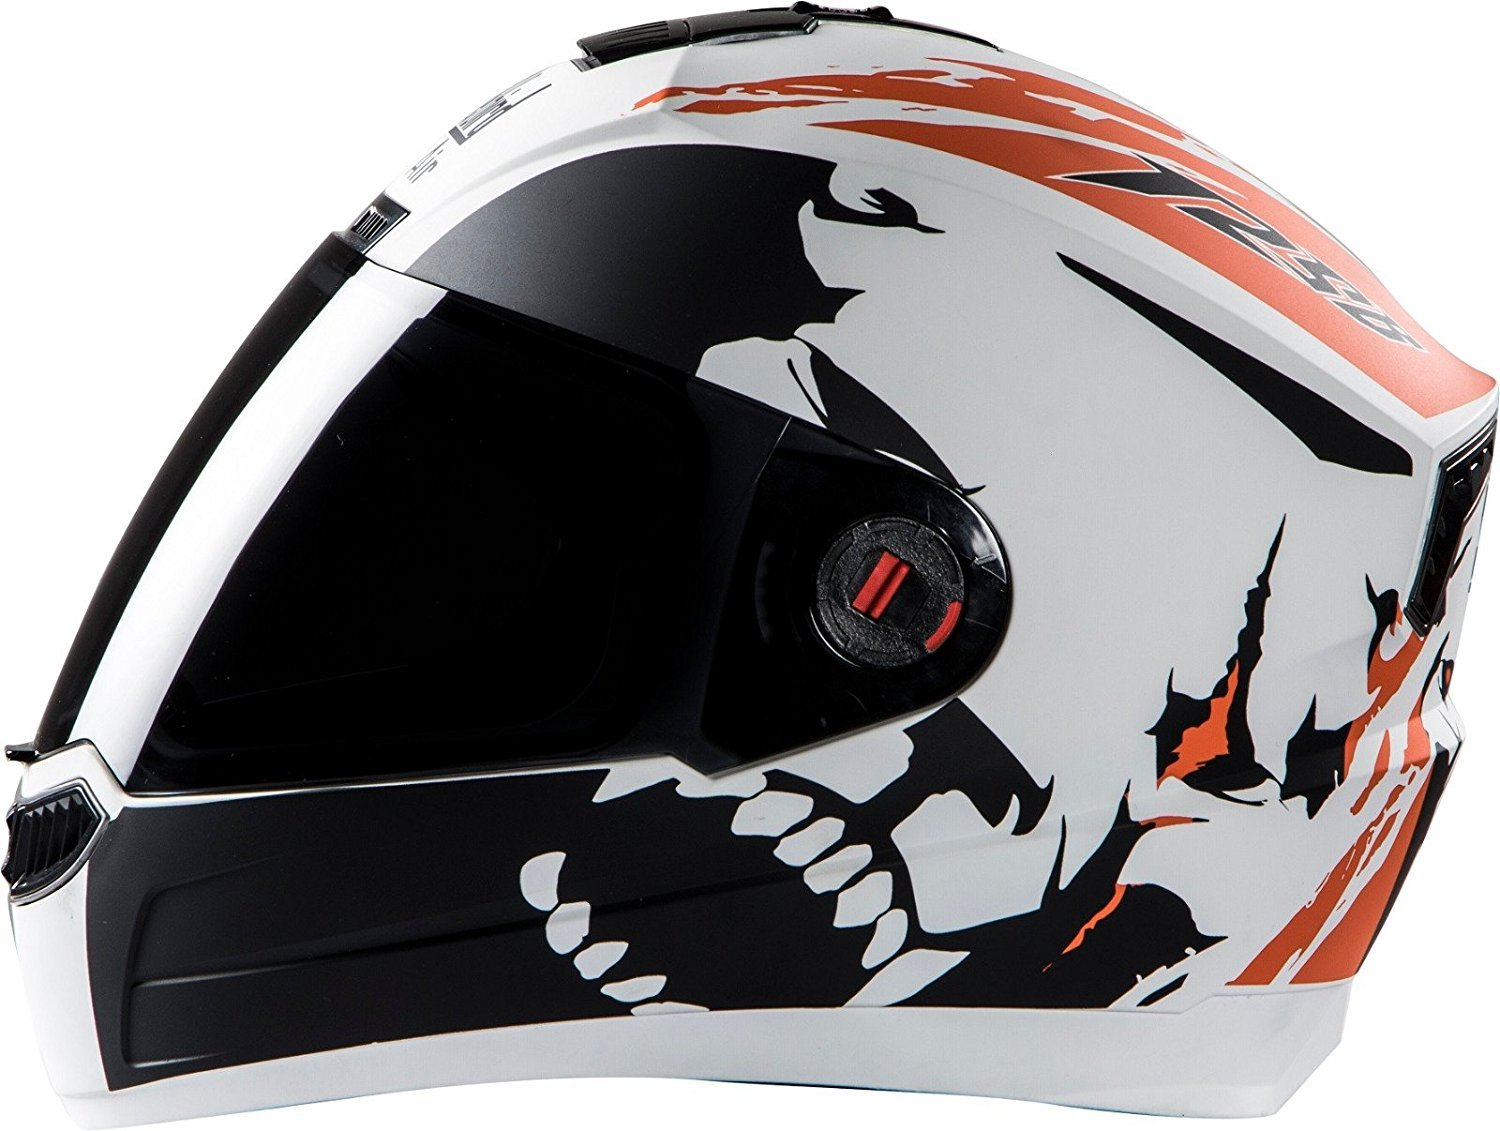 Steelbird Air Beast Matt Finish with Smoke Visor